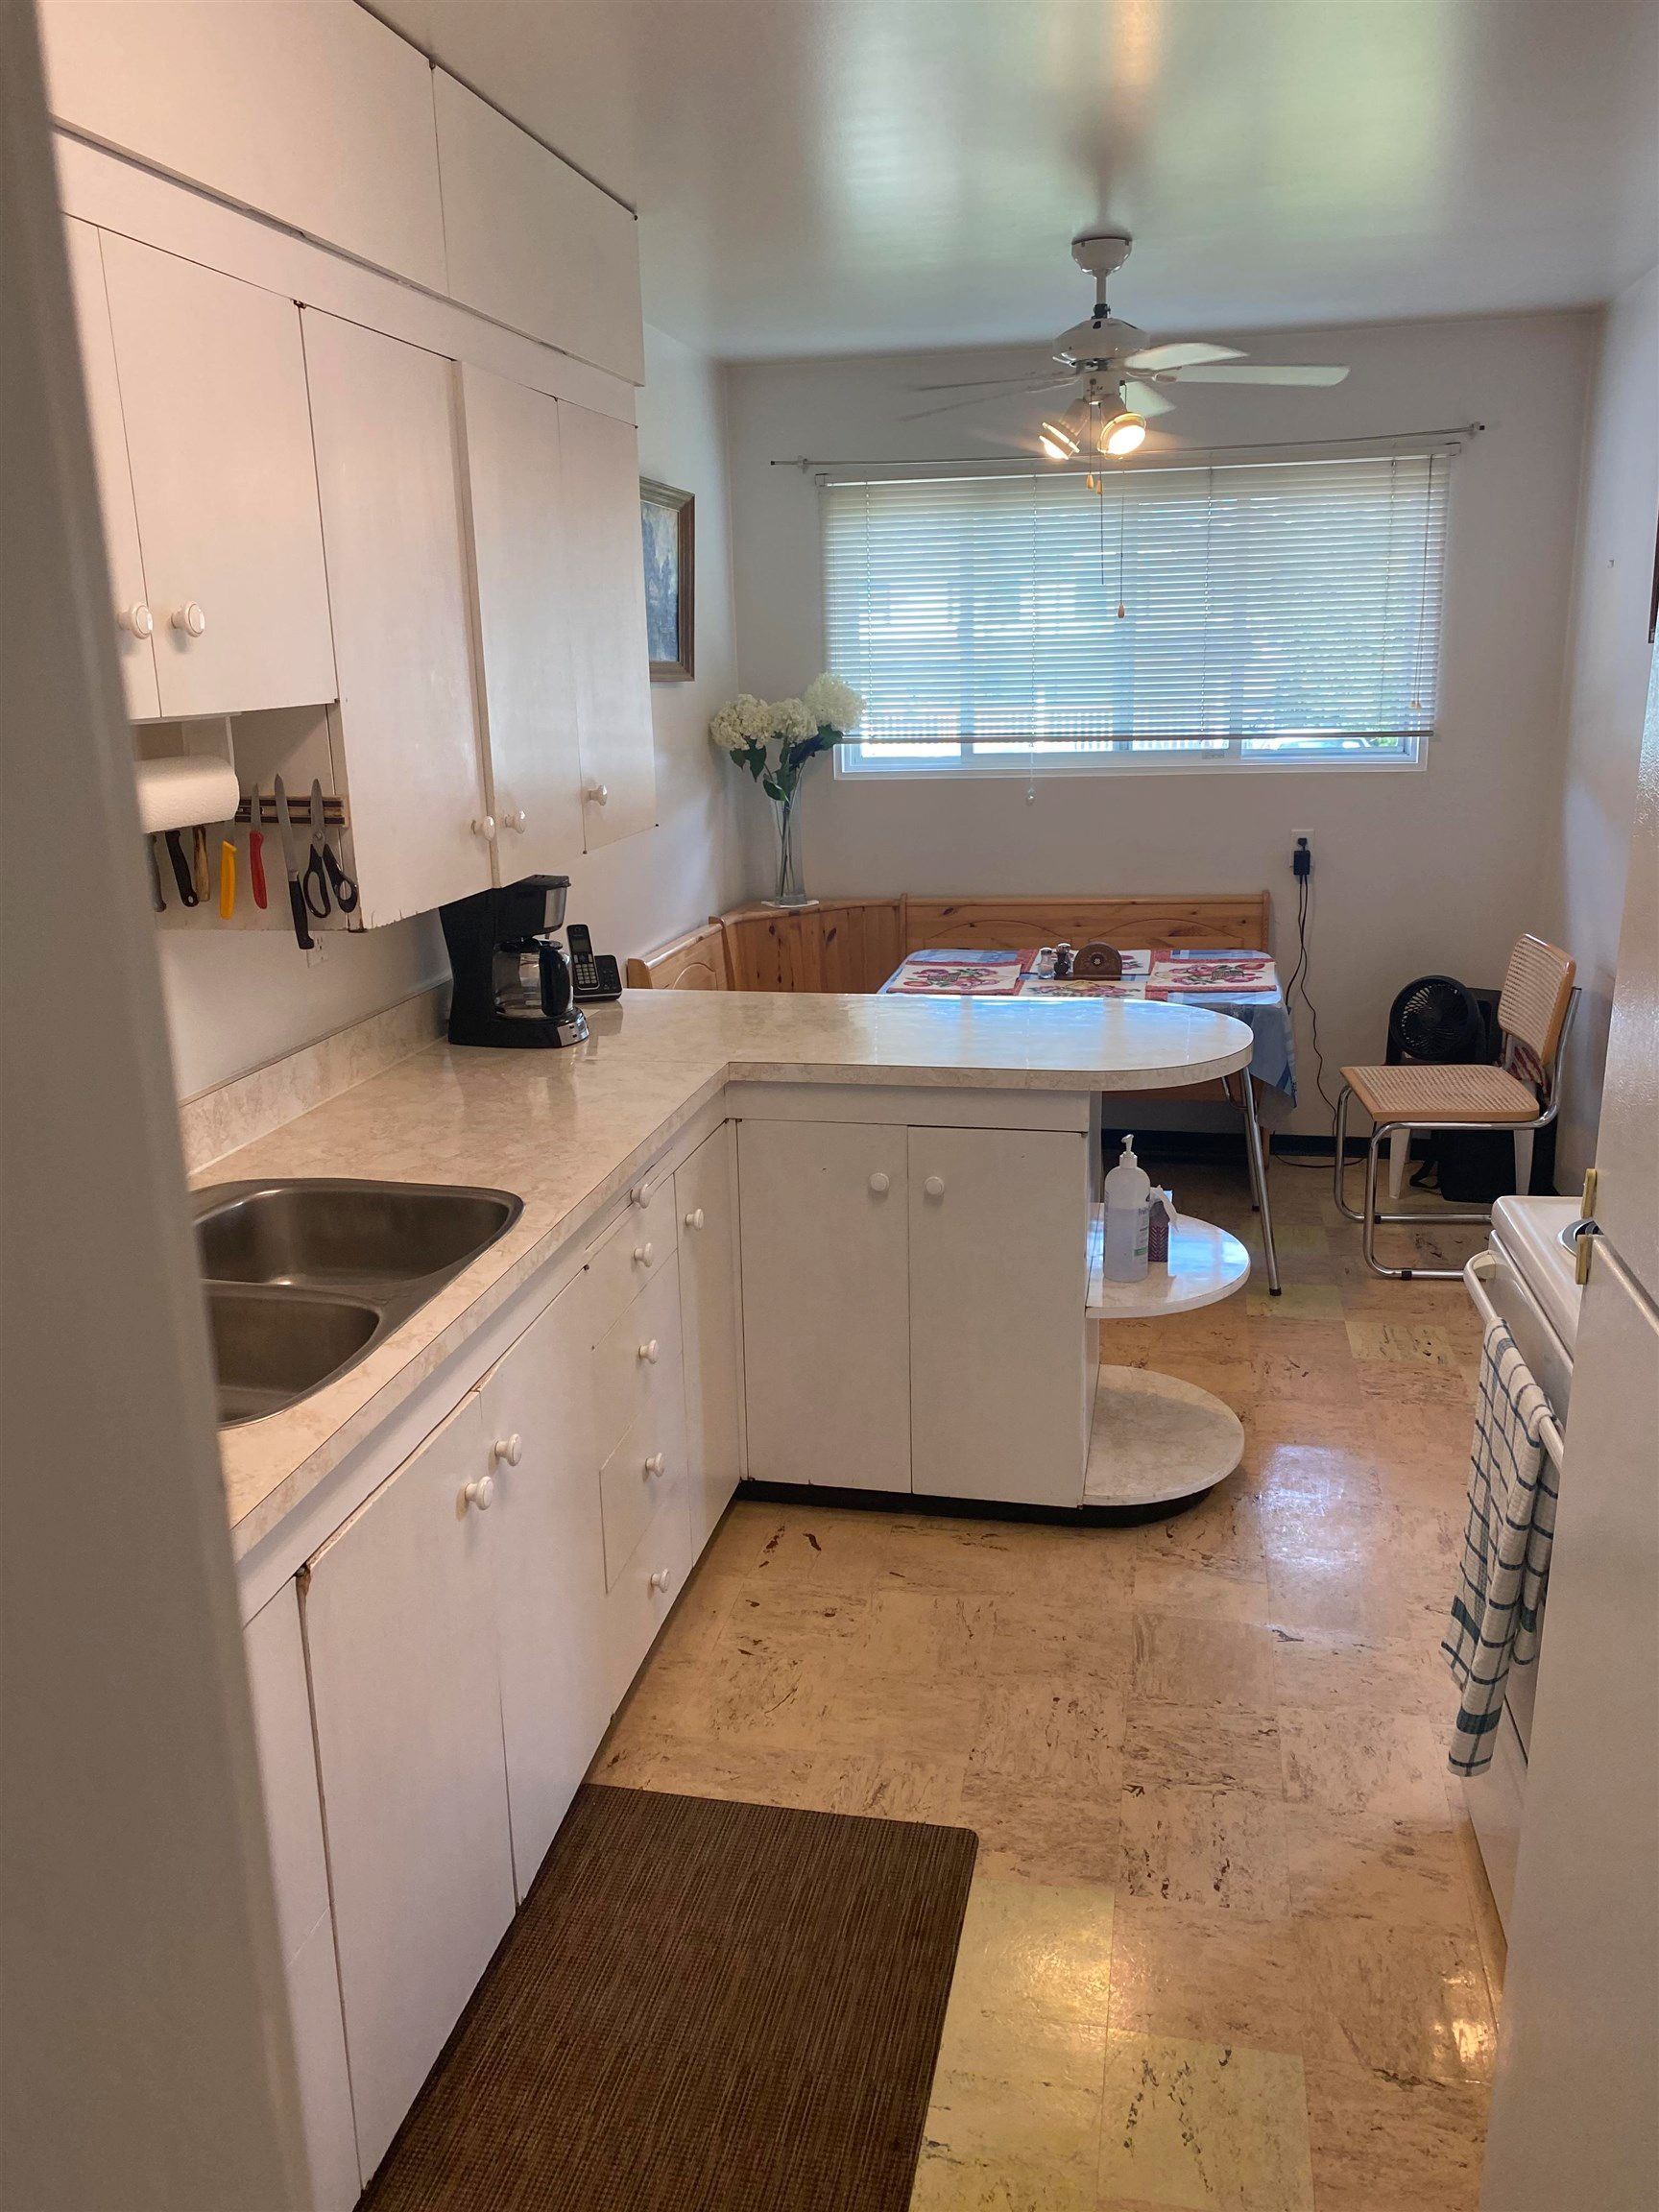 Photo 6: Photos: 346 - 352 CARNEY Street in Prince George: Central Duplex for sale (PG City Central (Zone 72))  : MLS®# R2609479